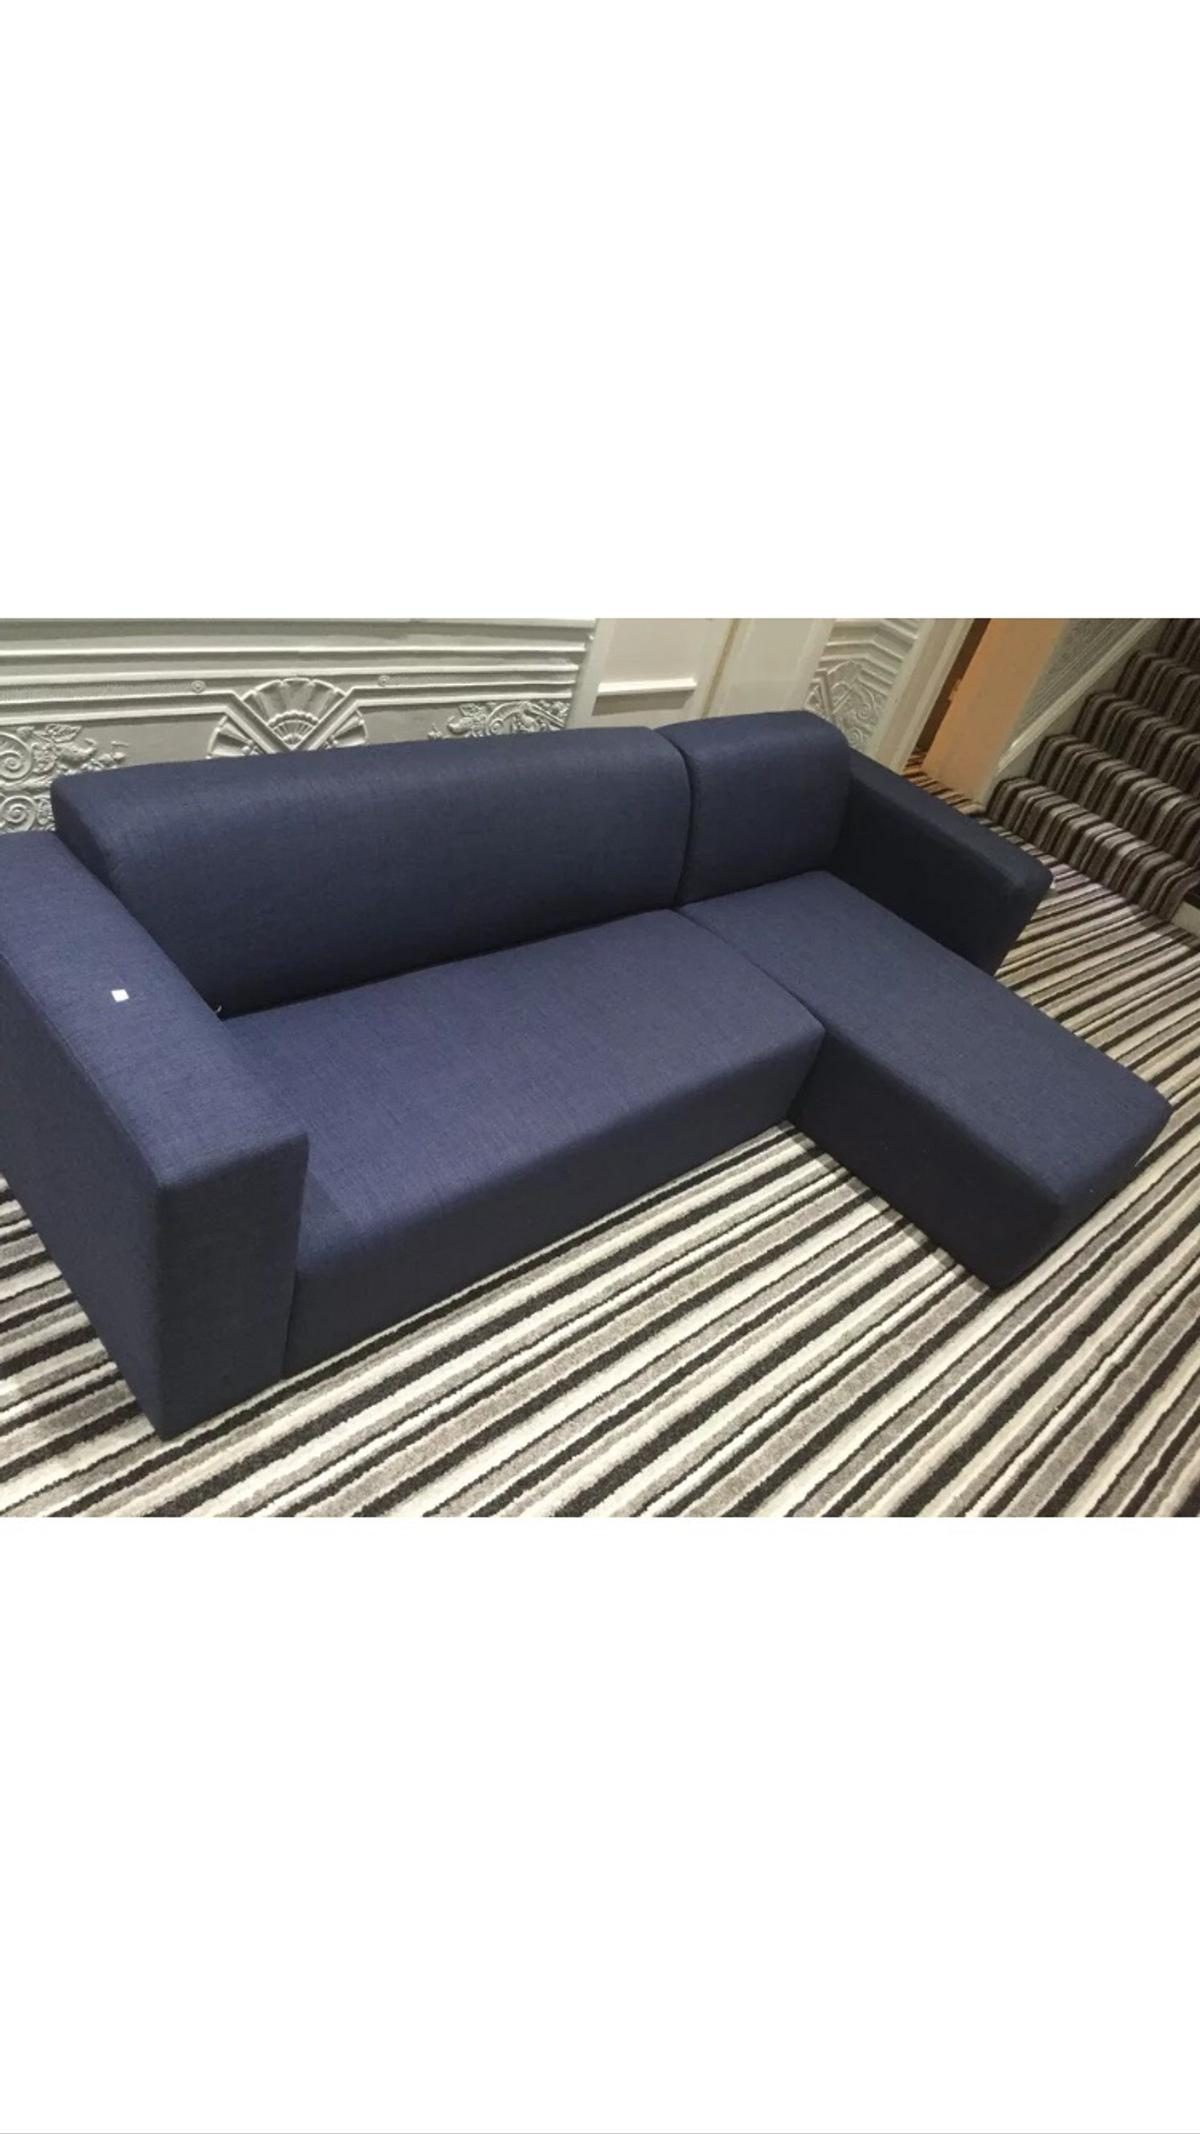 Tesco Stanza L Shape Blue Denim Sofa In